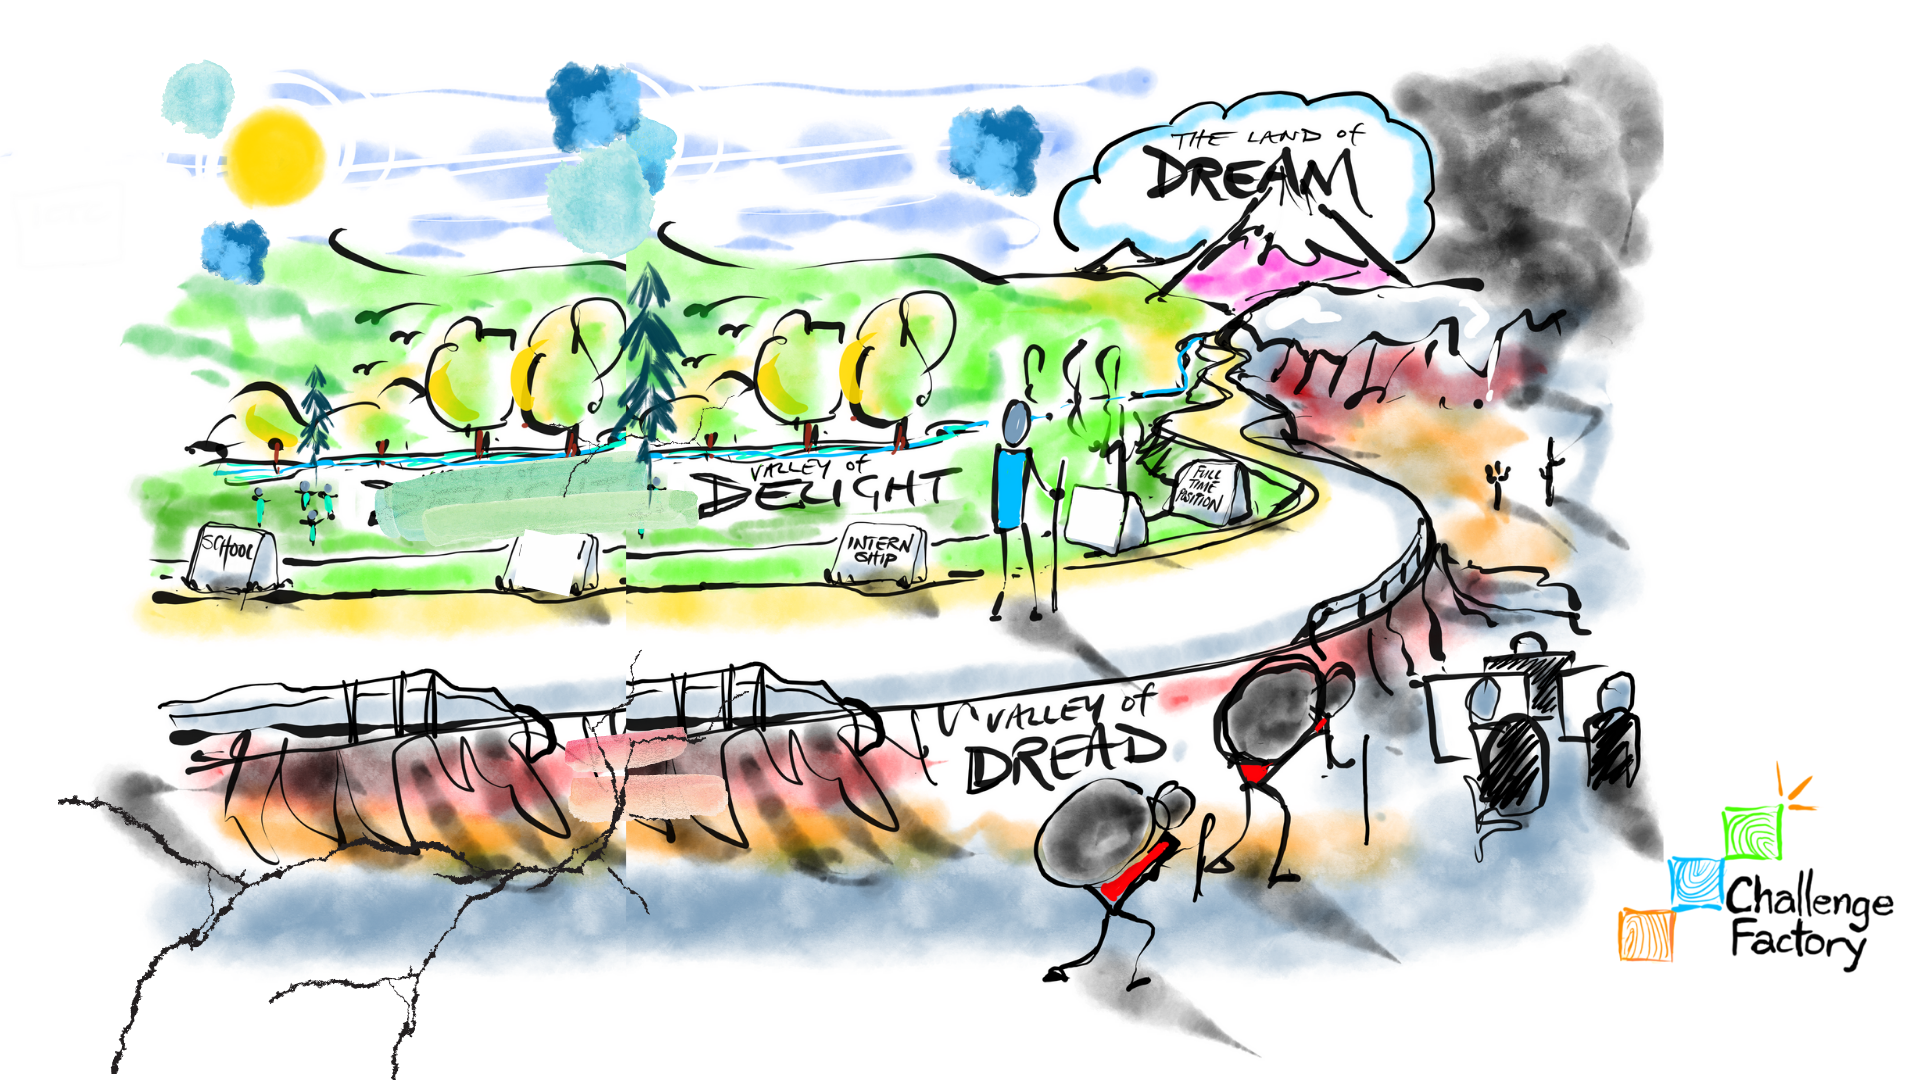 A hand-drawn image of a person on their personal journey to the land of dream—a beautiful mountain. To their left is the valley of delight, filled with sun, trees, and a river. To their right is the valley of dread, where the earth is covered in sand and darkness prevails. Those who are at work in the valley of dread seem hard-pressed to escape.